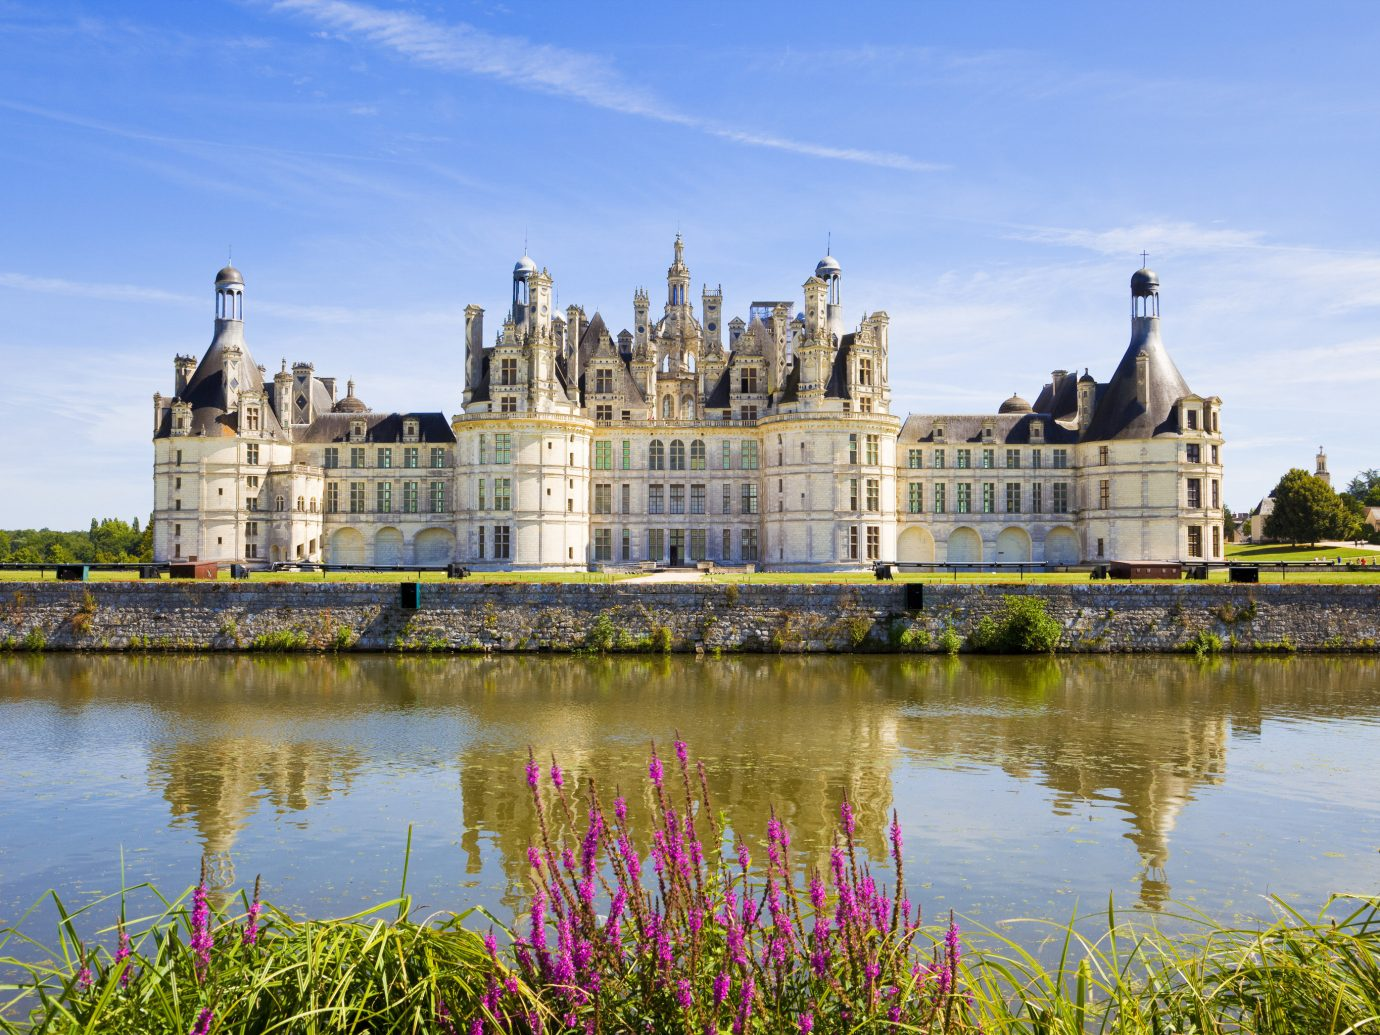 Trip Ideas outdoor water sky château reflection landmark building water castle castle Nature Lake River moat tourism palace waterway park day